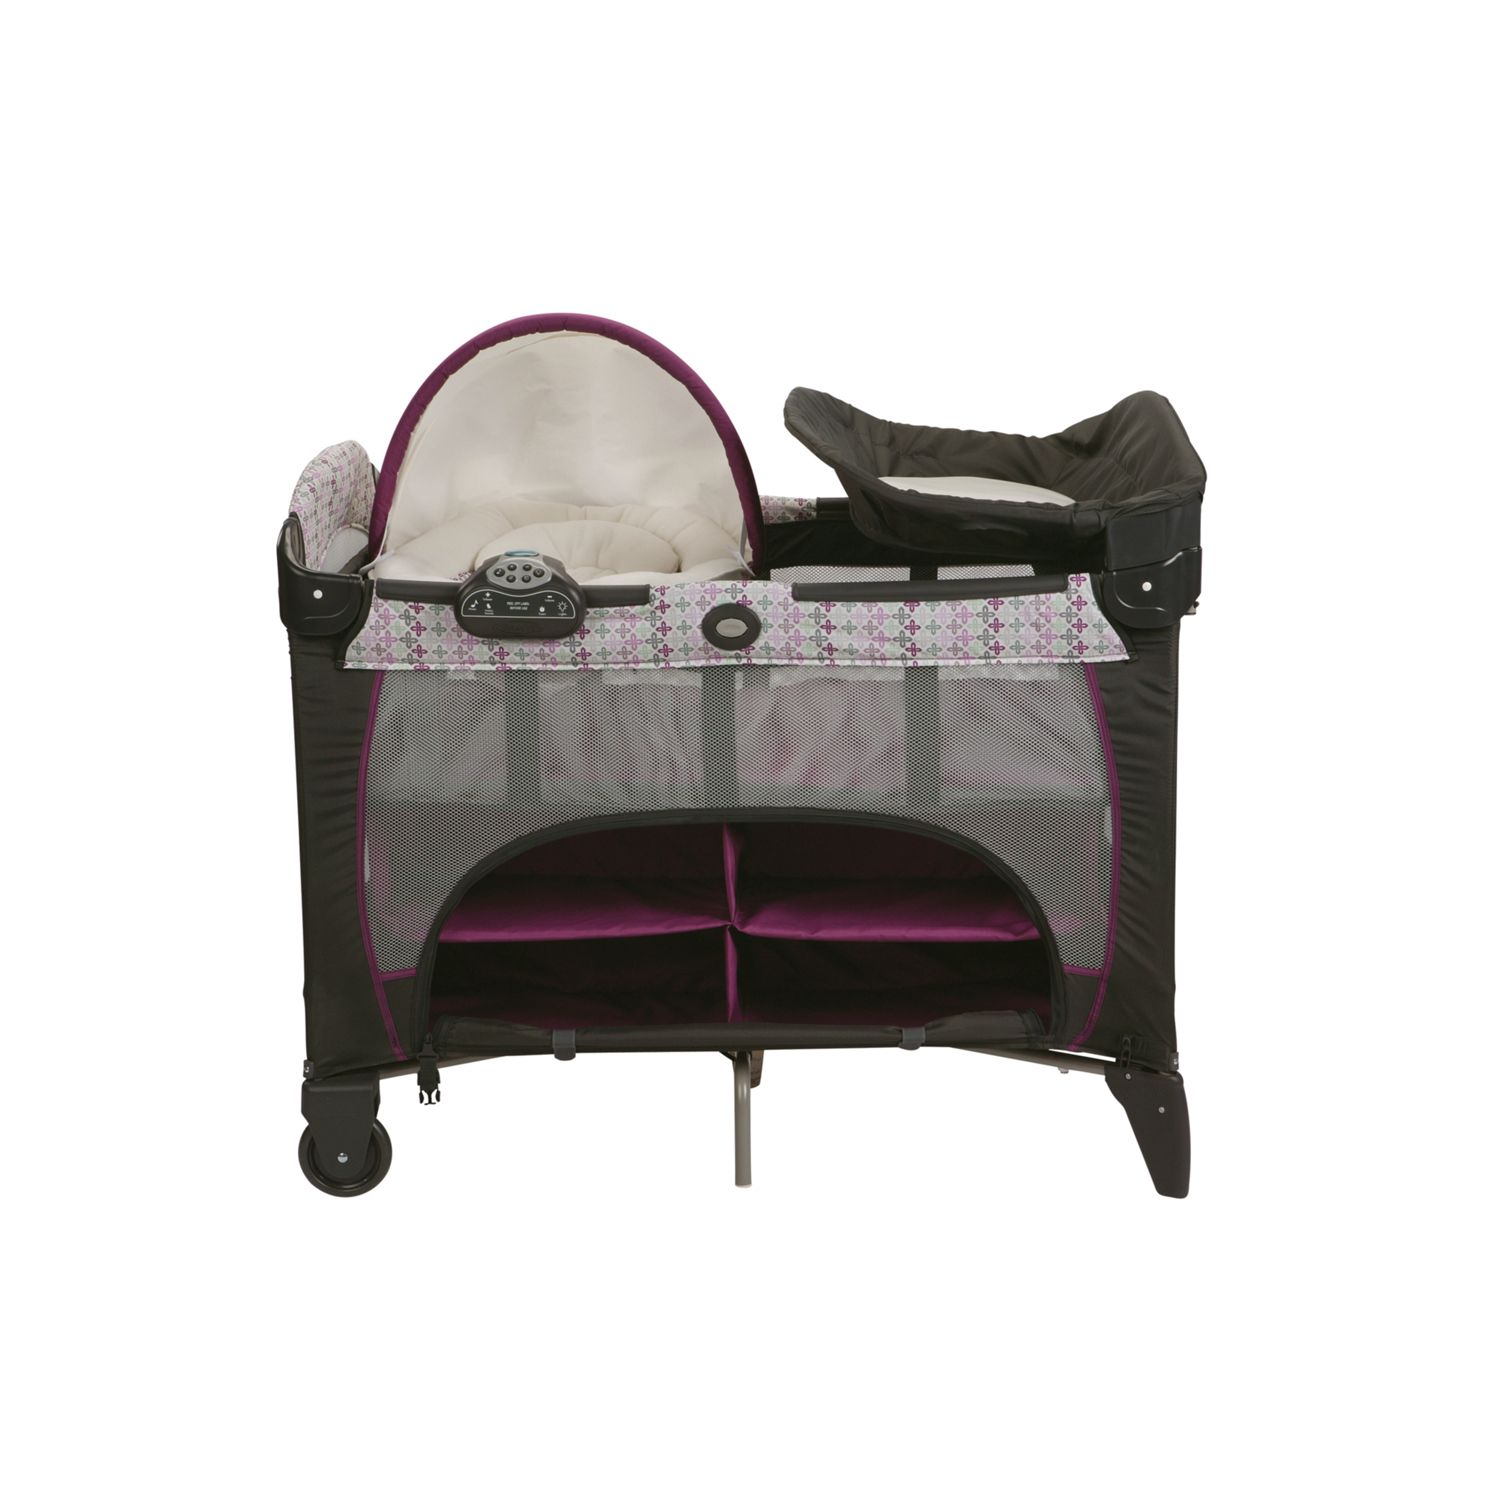 Graco Play Yards & Portable Beds Baby Gear